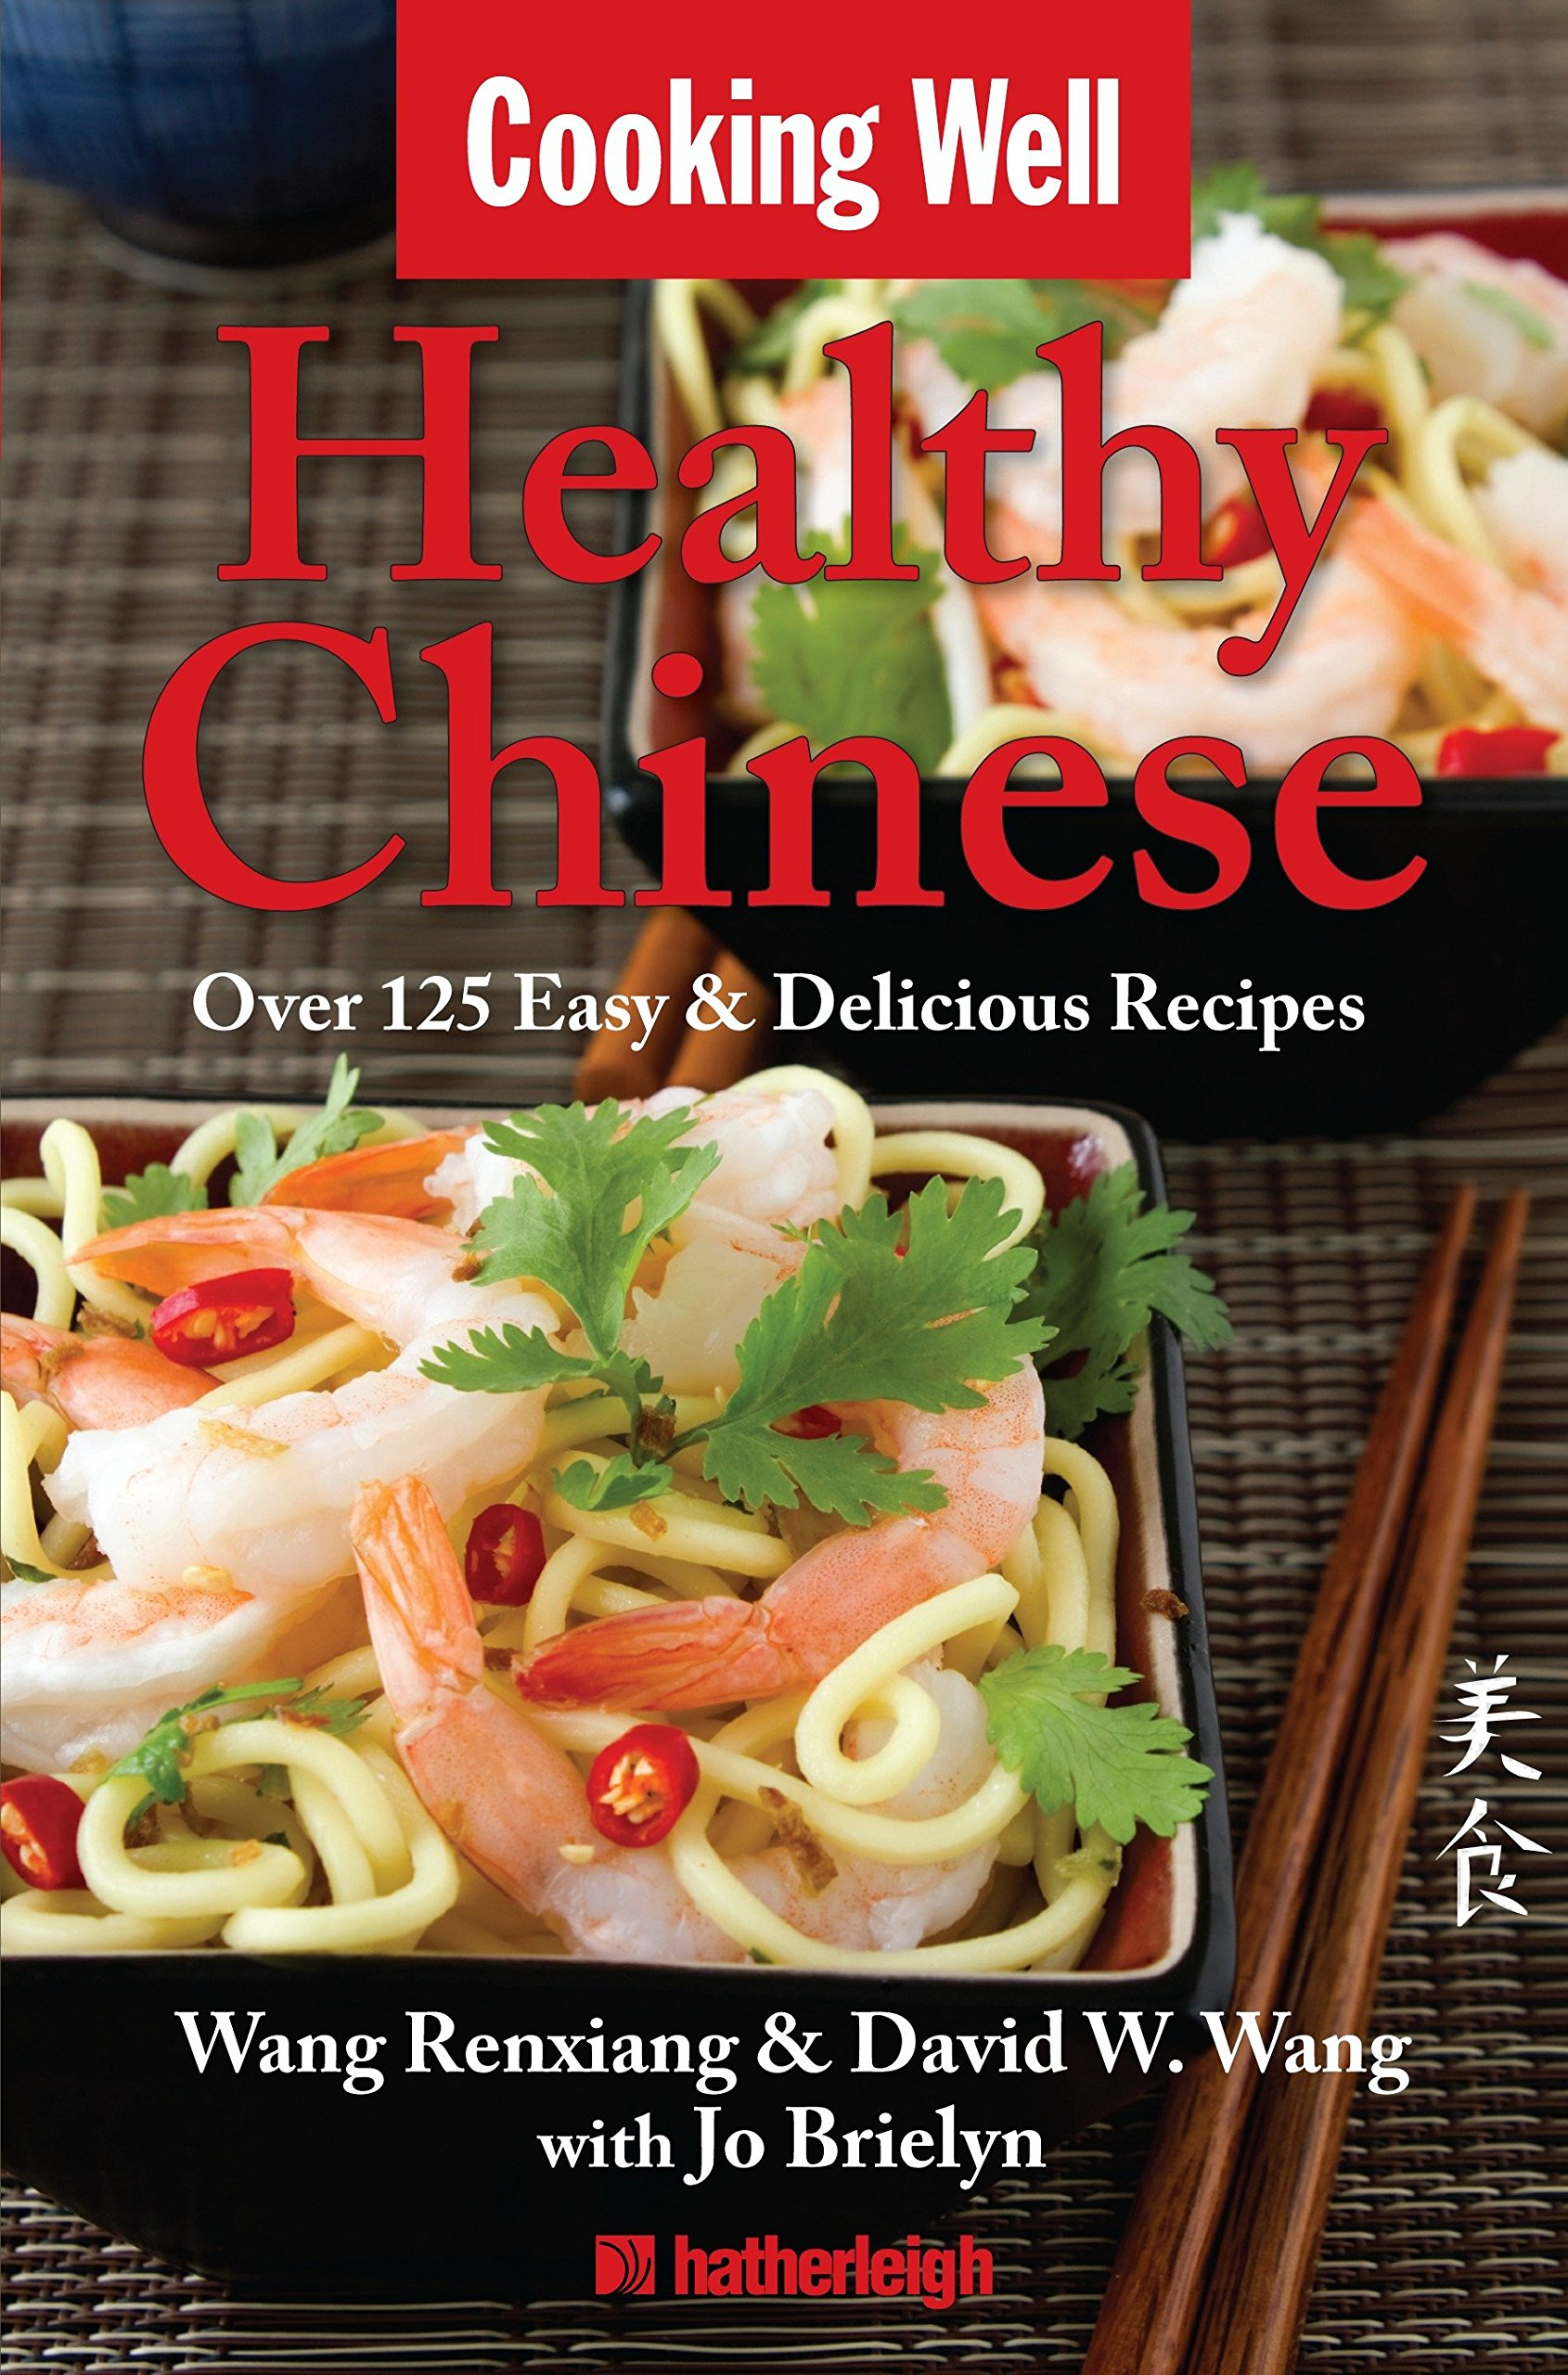 Download Cooking Well: Healthy Chinese: Over 125 Easy & Delicious Recipes ebook